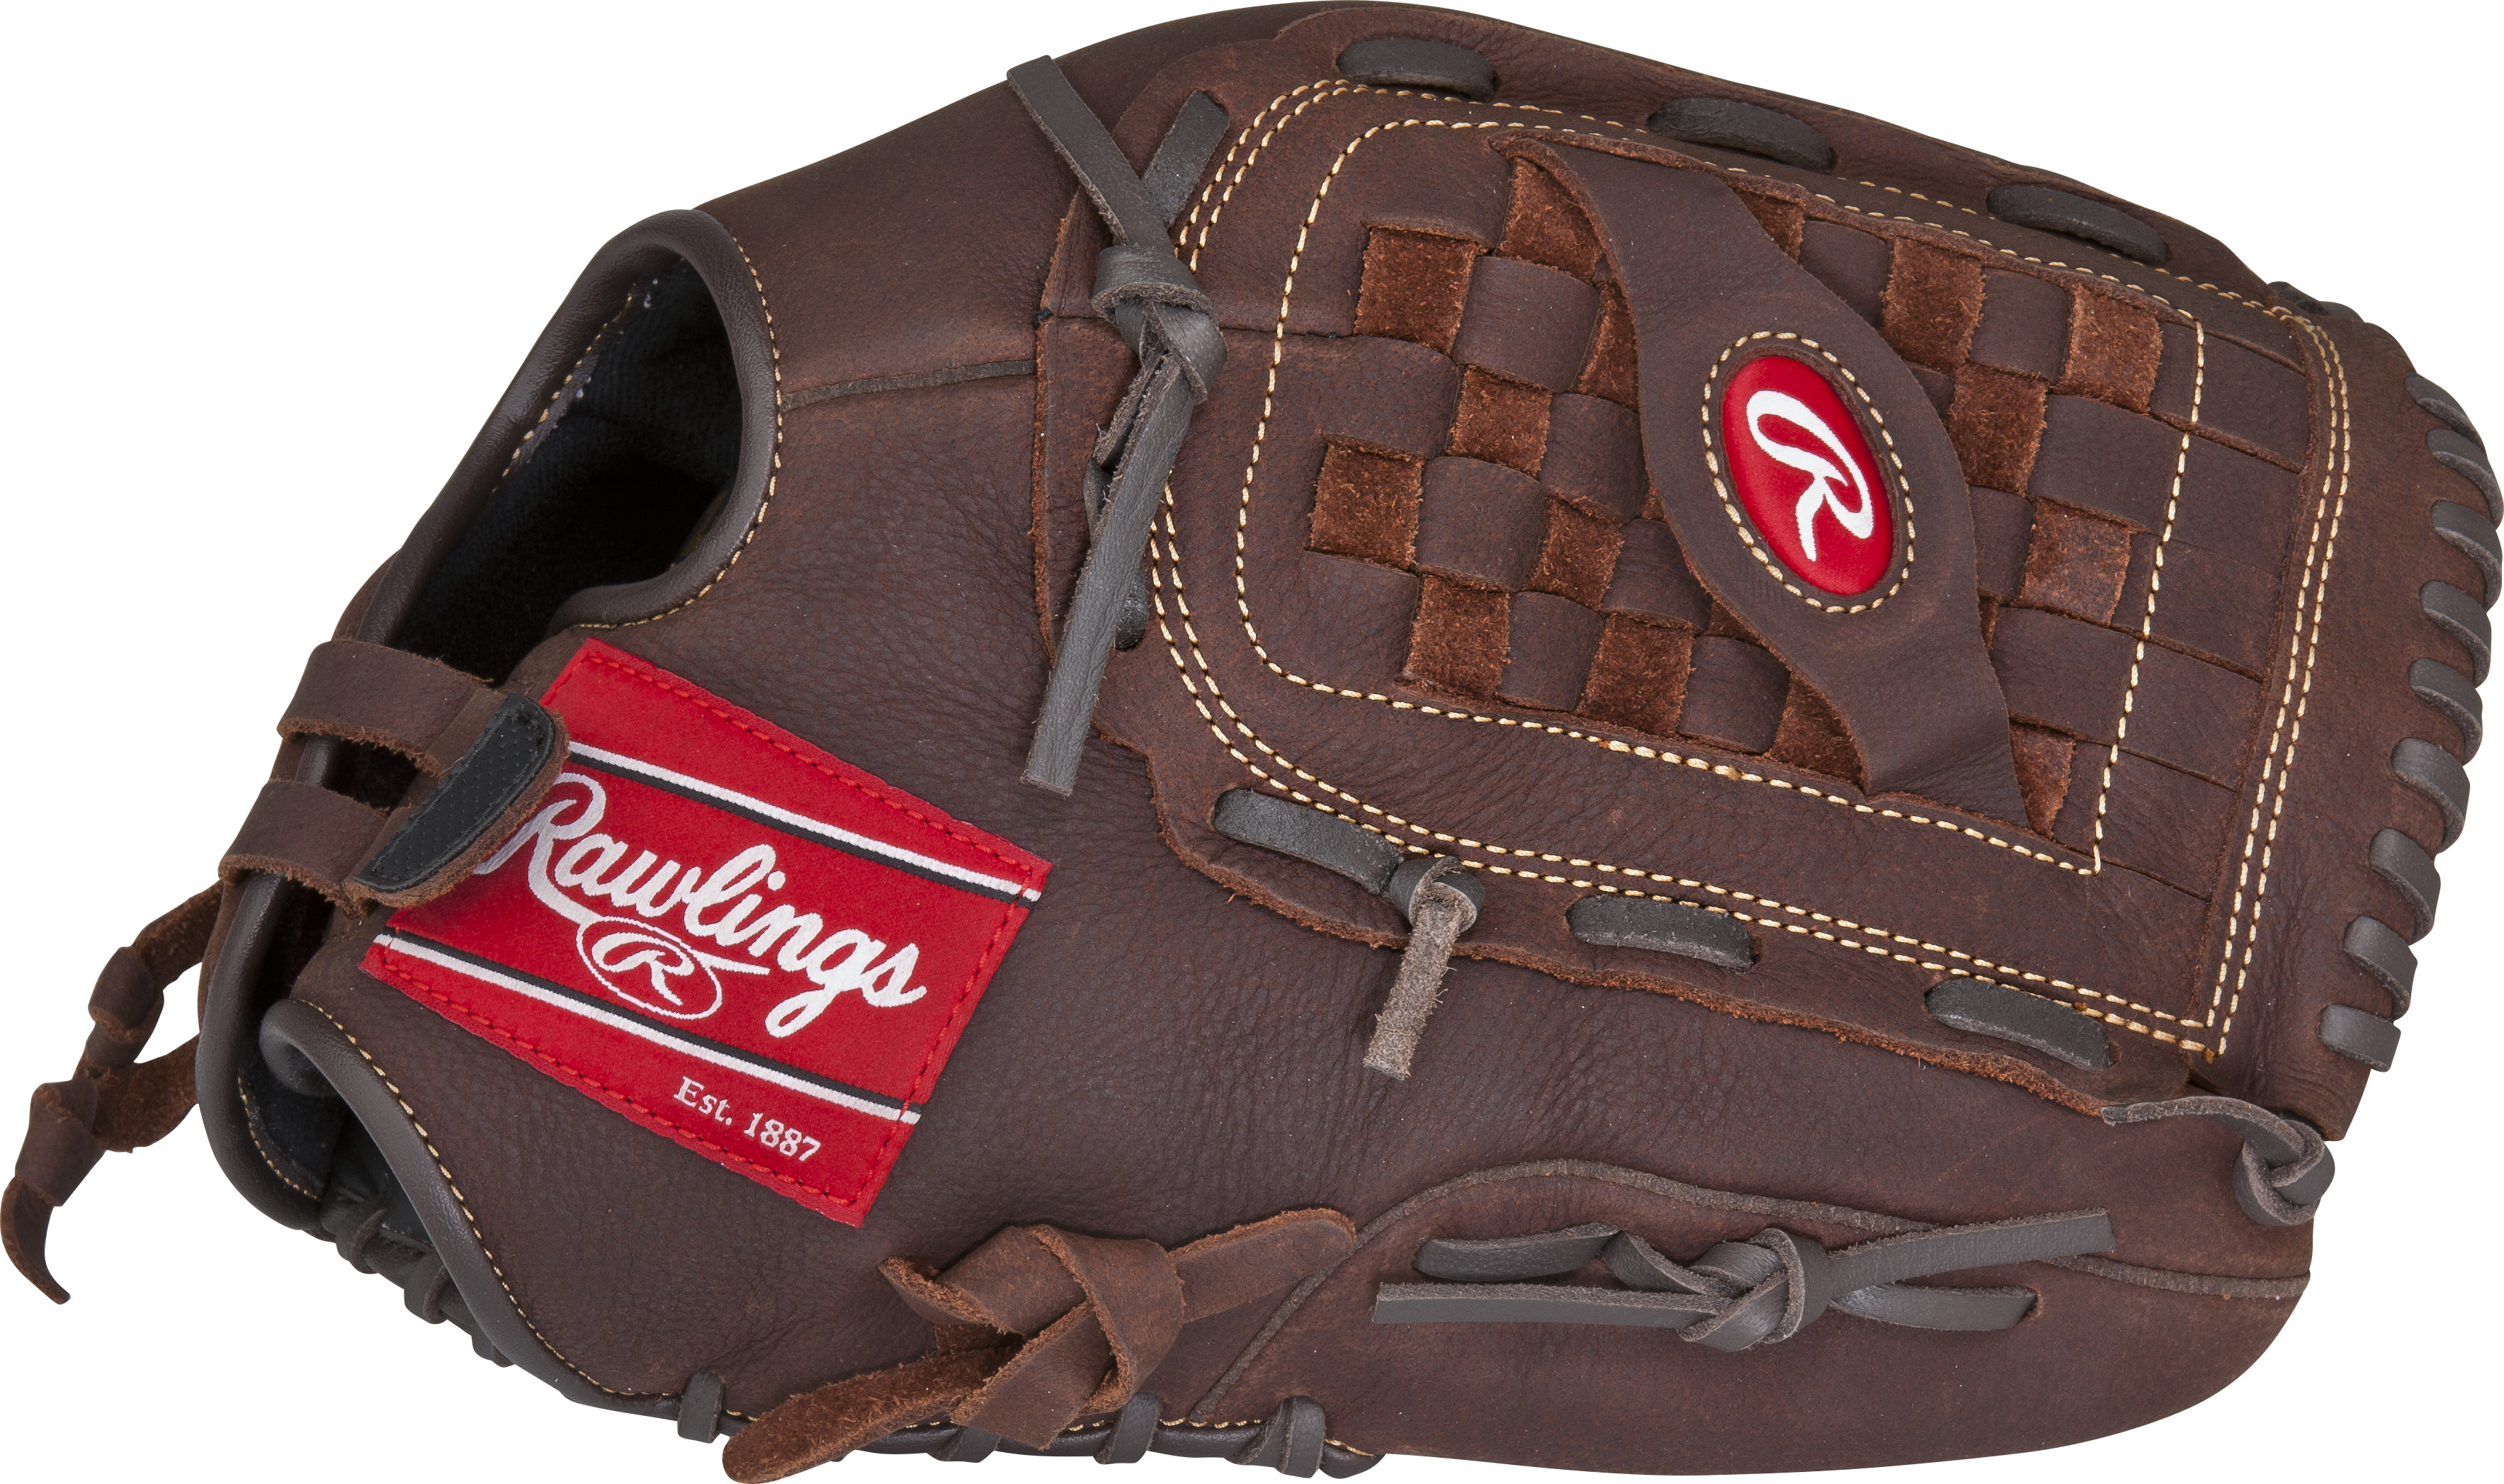 http://www.bestbatdeals.com/images/gloves/rawlings/P140BPS_thumb.jpg